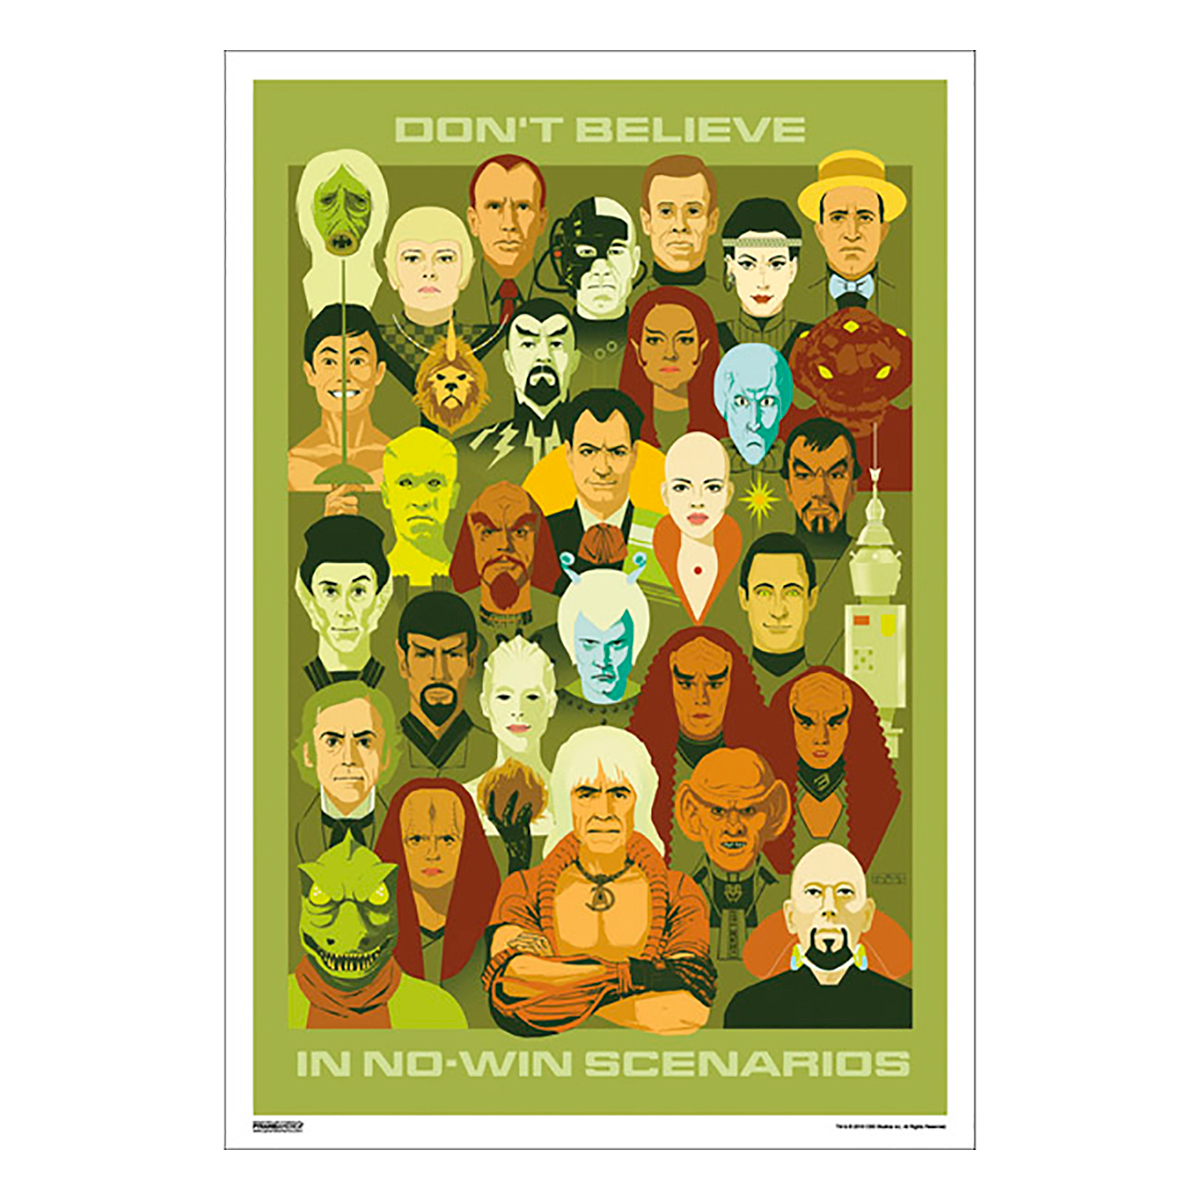 Star Trek 50th Art Collection Don't Believe in No-Win Scenarios by Amy Beth Christenson Poster [13 x 9]